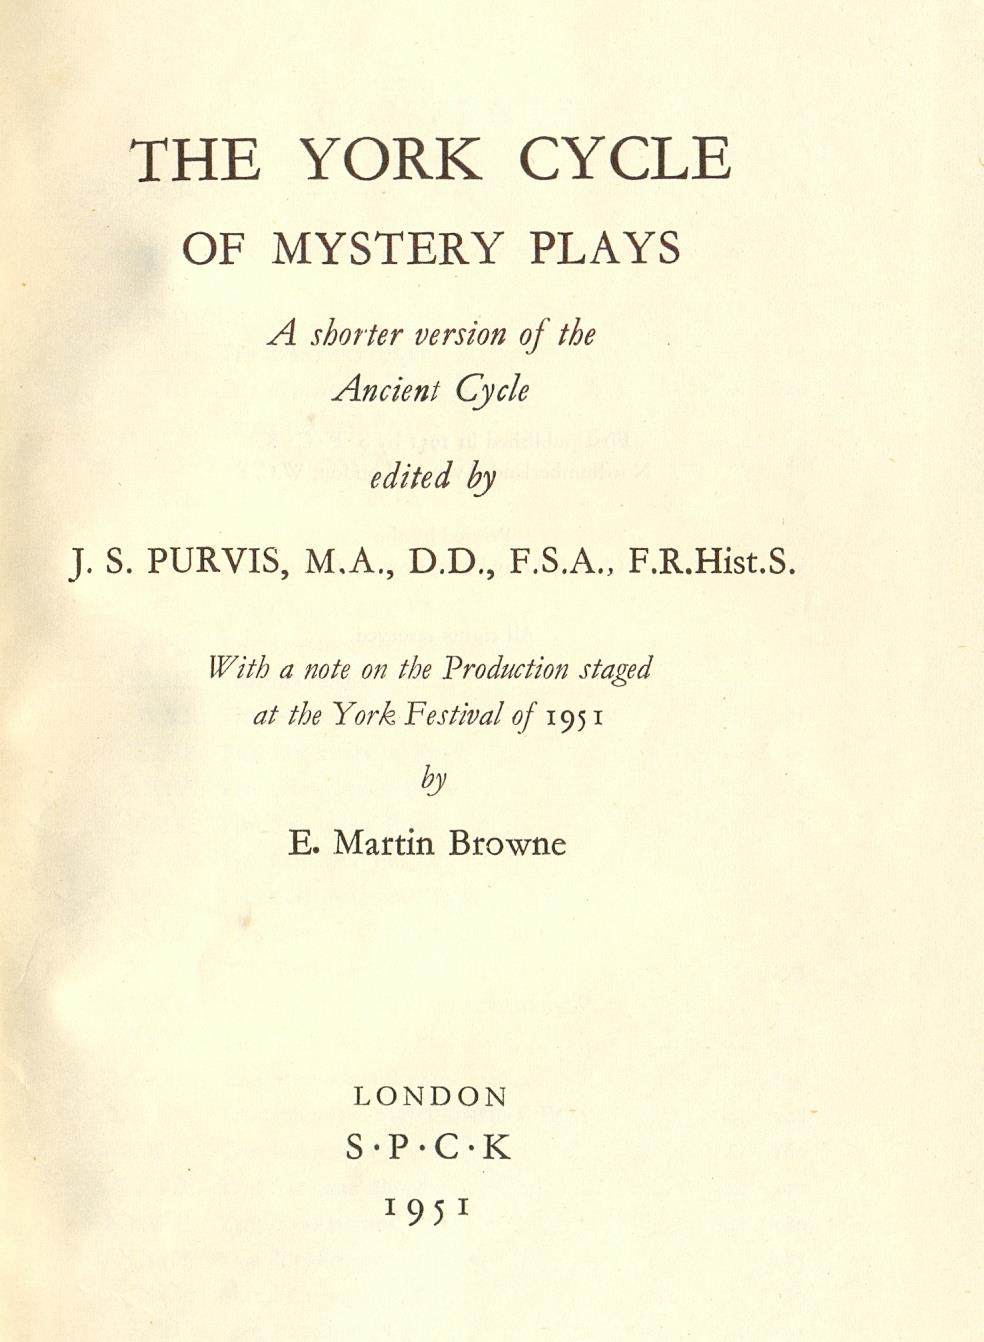 1951 title page